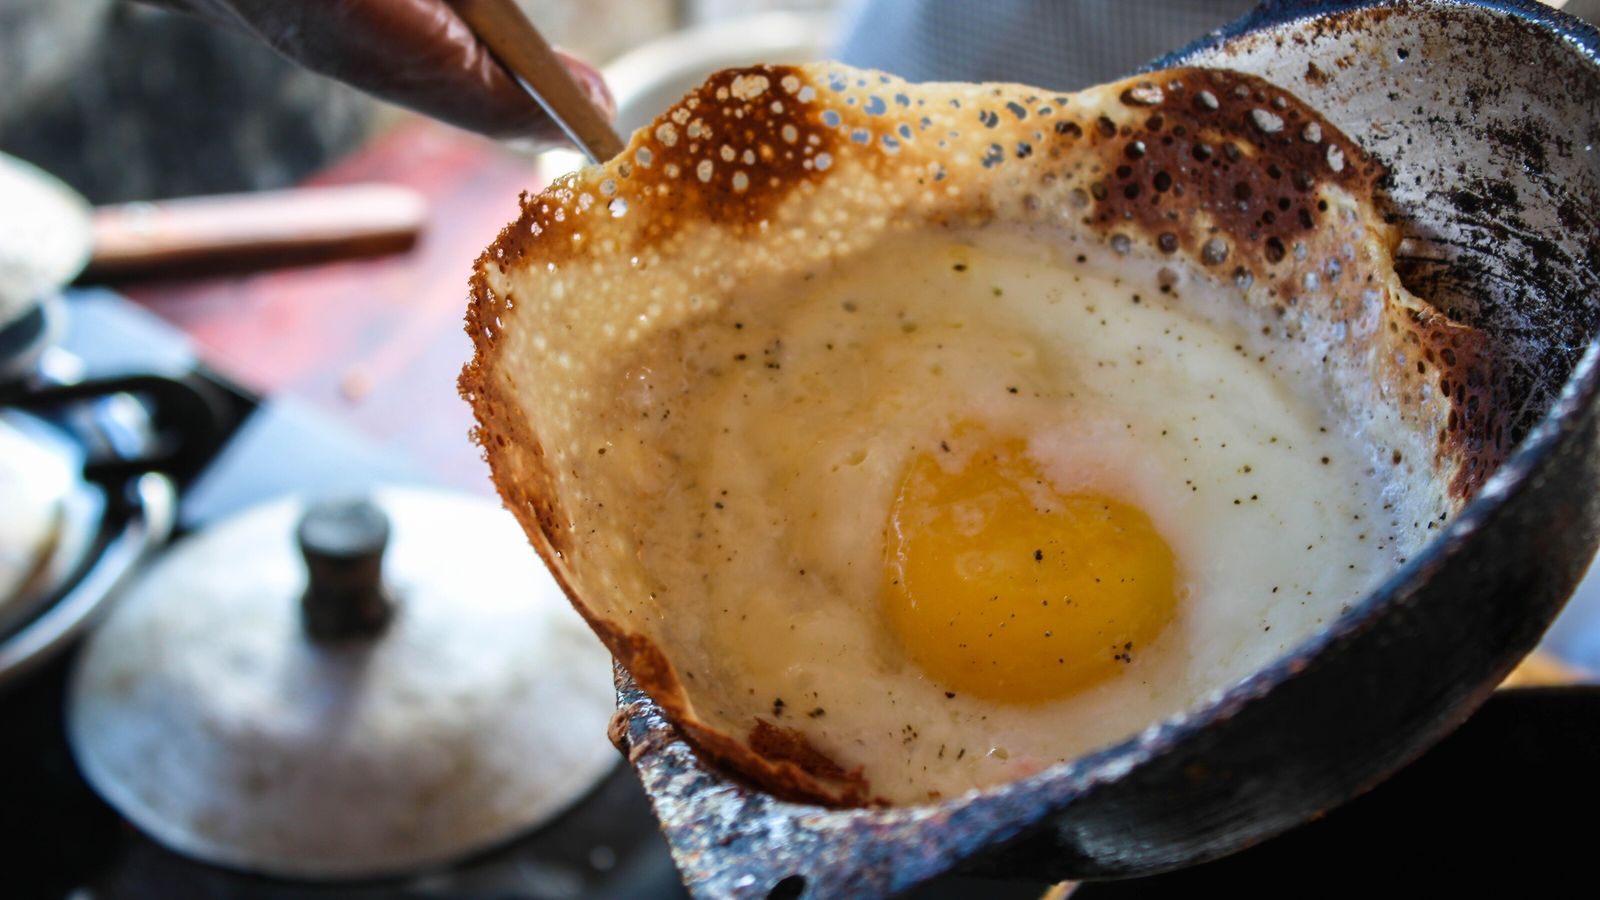 Hoppers are a morning staple in Sri Lanka and a popular street food.